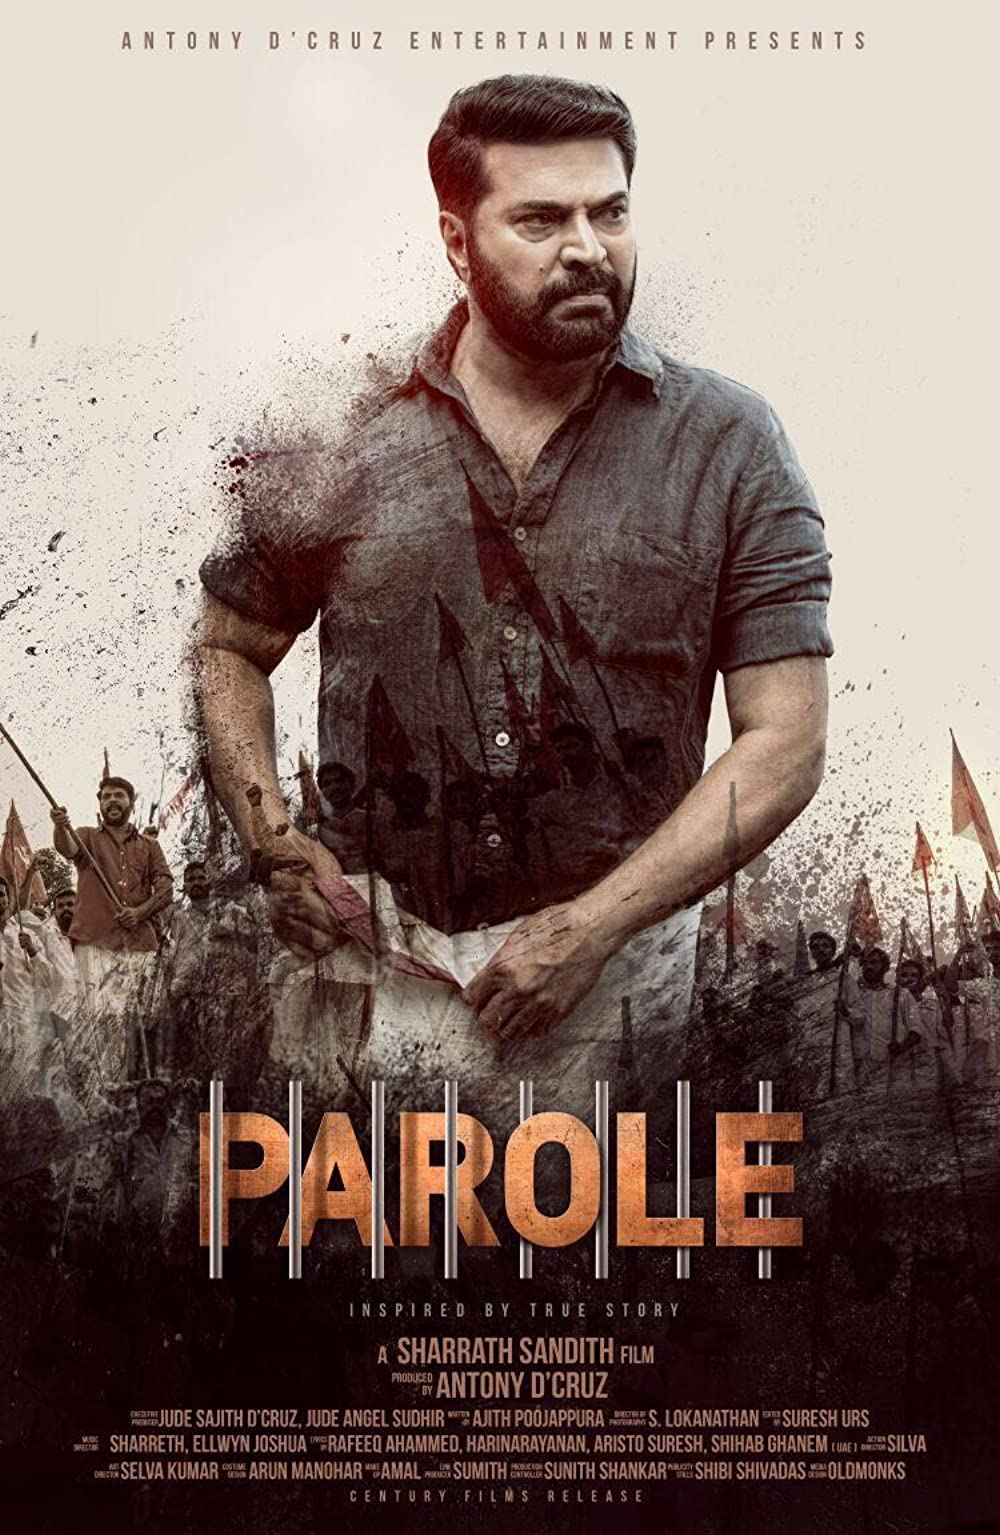 Parol (Parole) 2021 Hindi Dubbed 720p HDRip 875MB Download